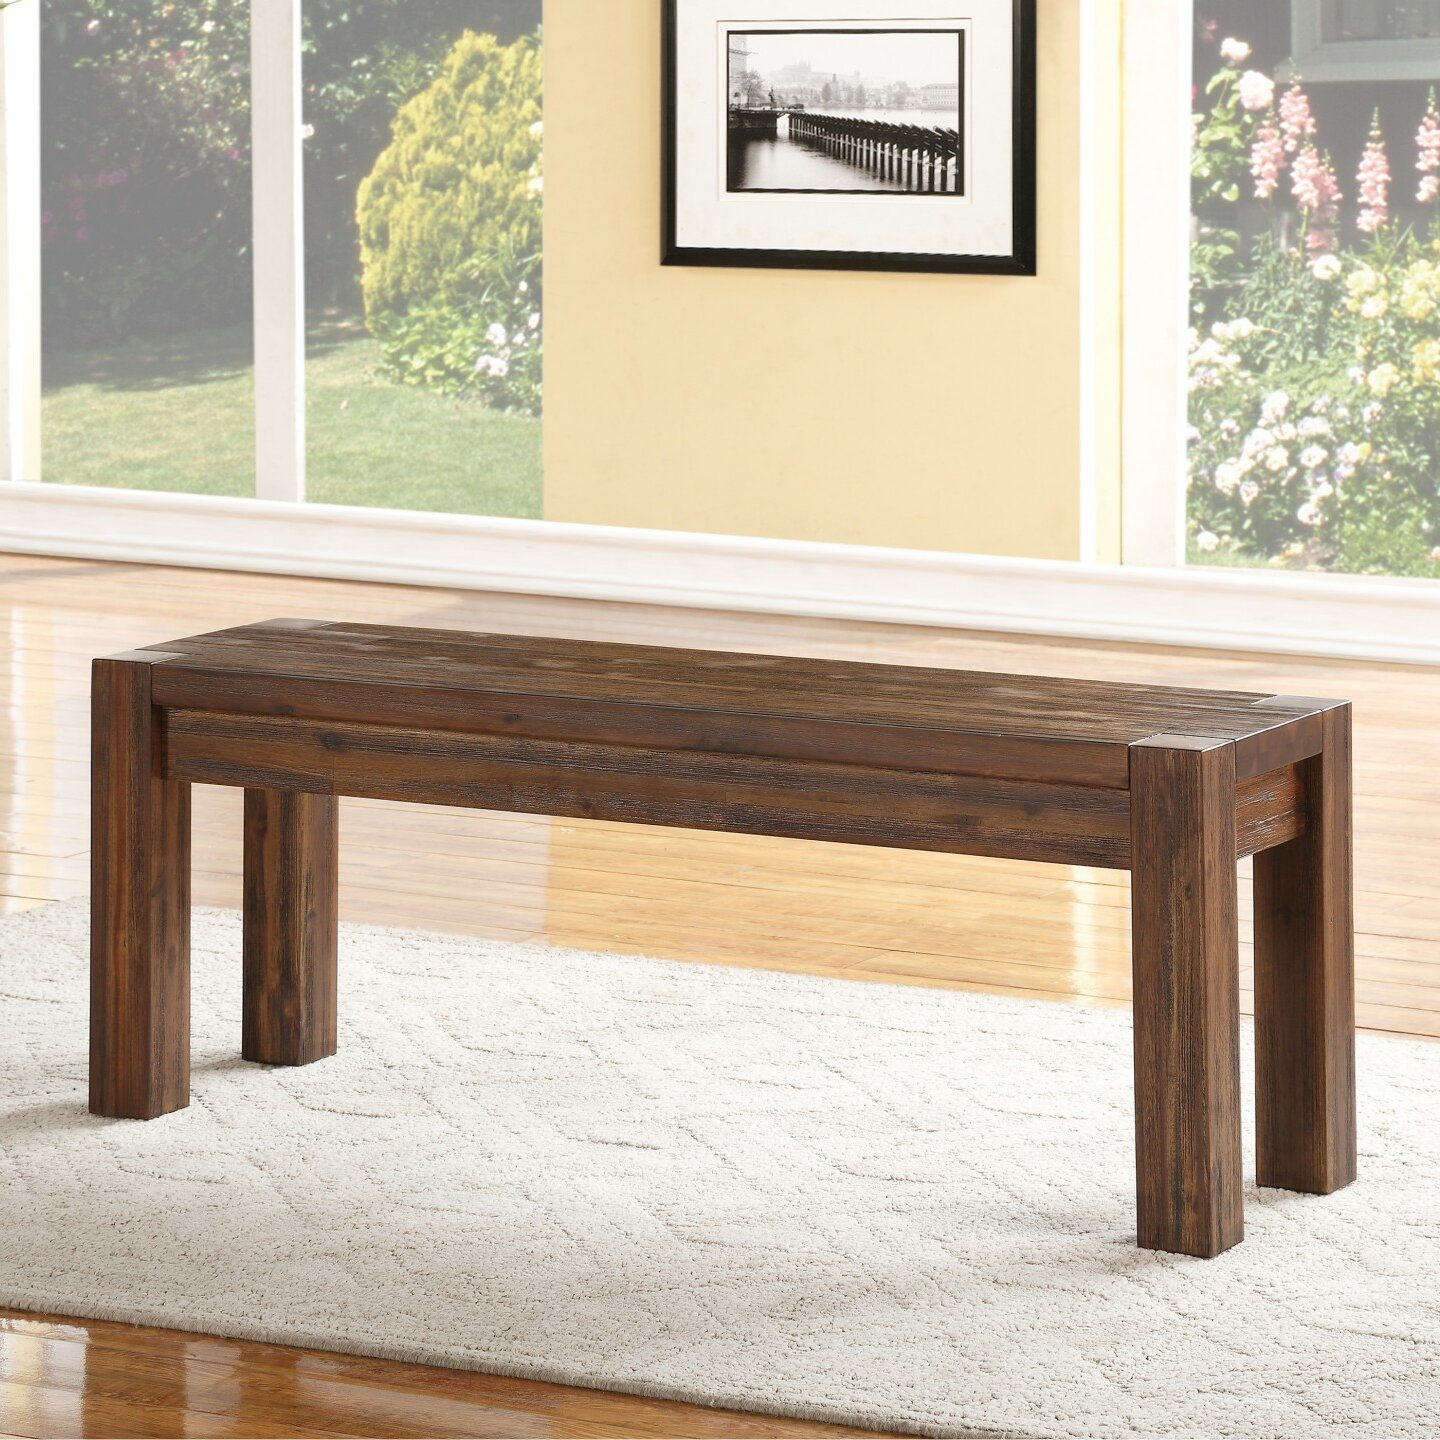 Modus Furniture Urban Seating Storage Bench Natural Linen: Modus Meadow Two Seat Bench & Reviews